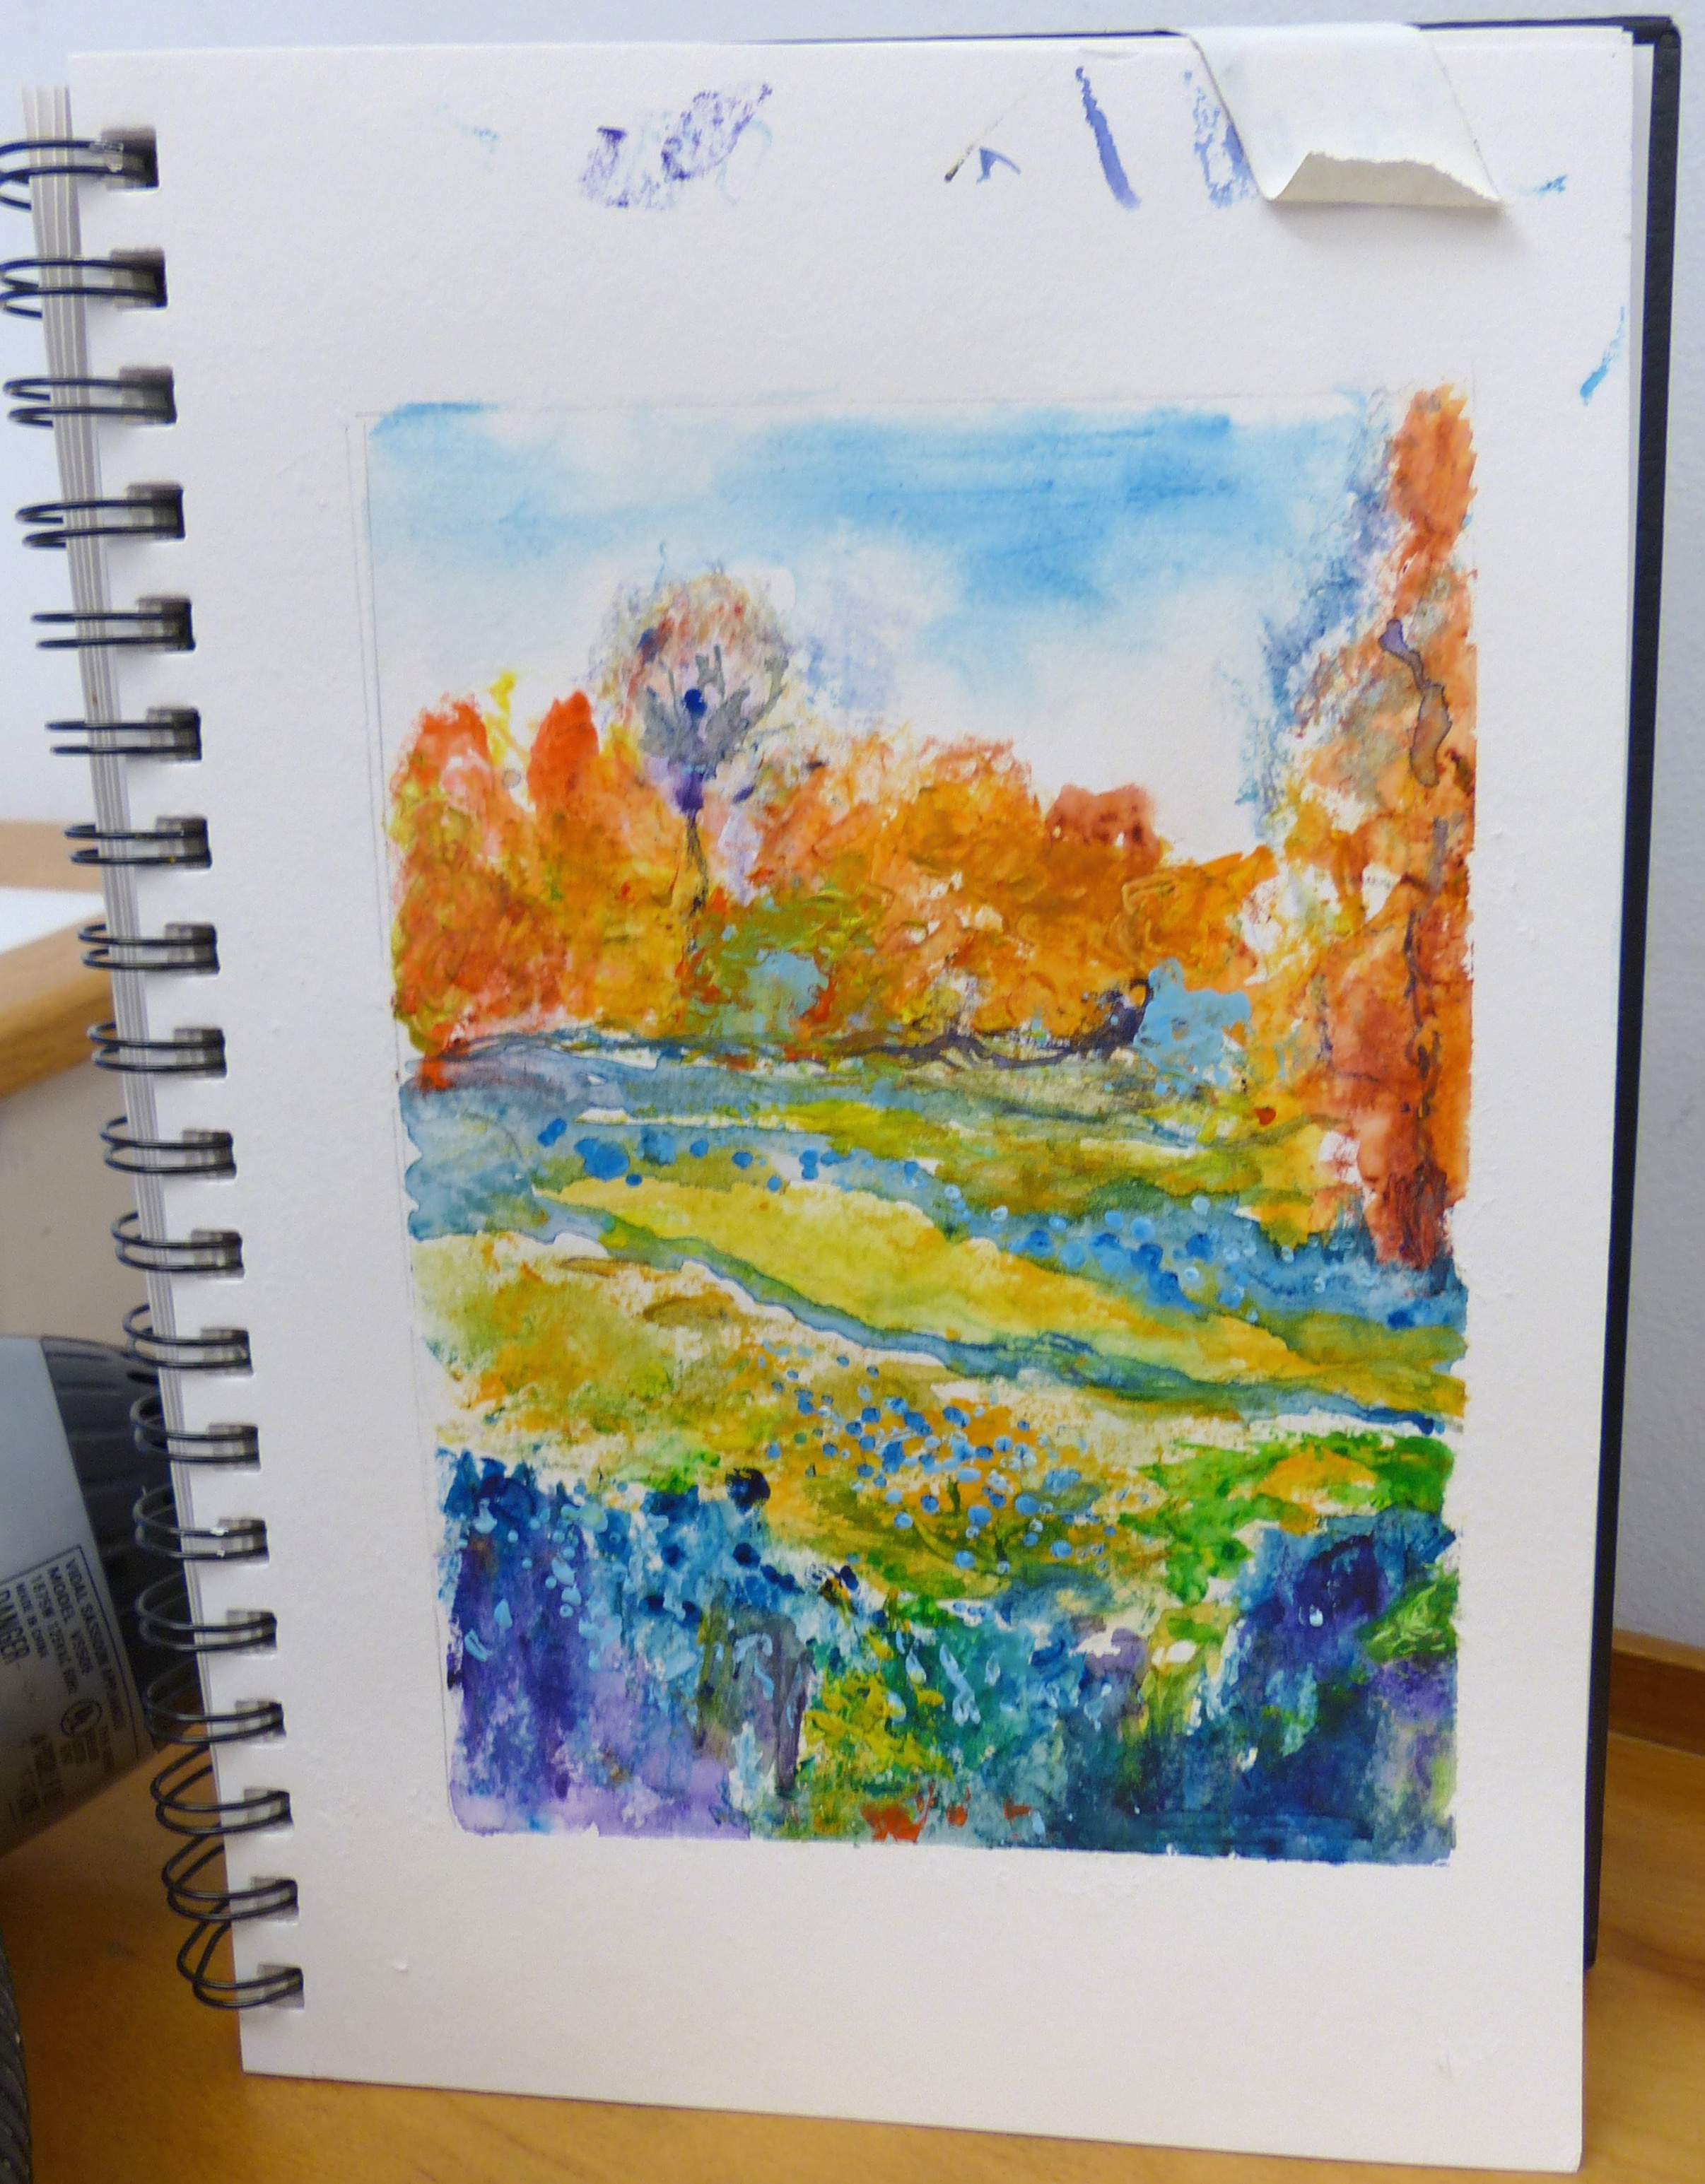 Watercolor art society houston tx - Impressionism Class At Was H Was Great Fun Susan Giannantonio Artist